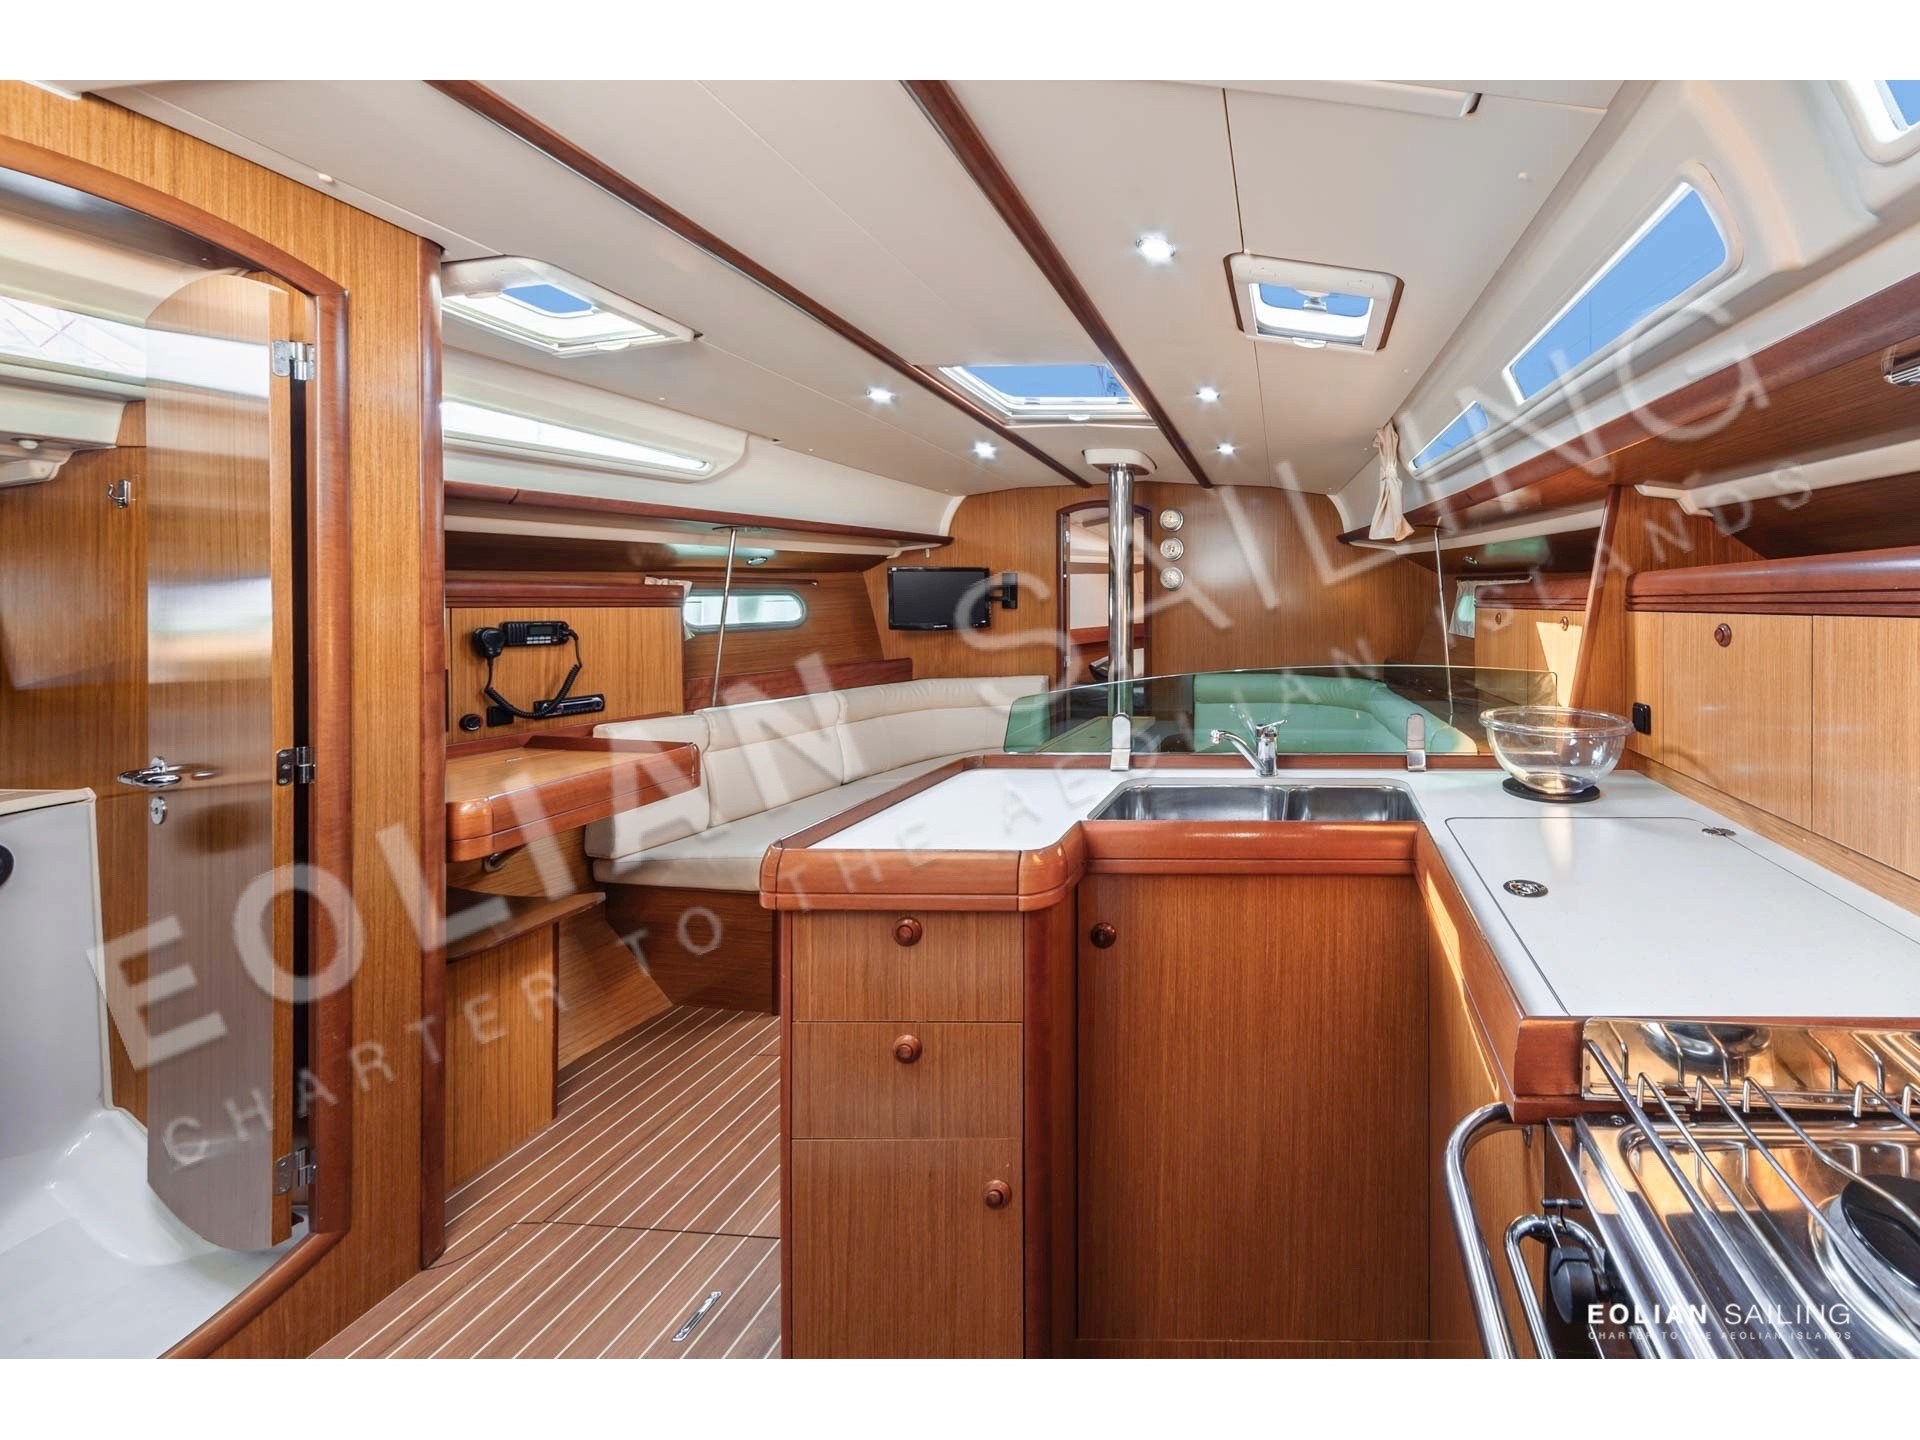 Jeanneau S.O. 42i (Vera (refitted in 2019, like new!)) Interior image - 4